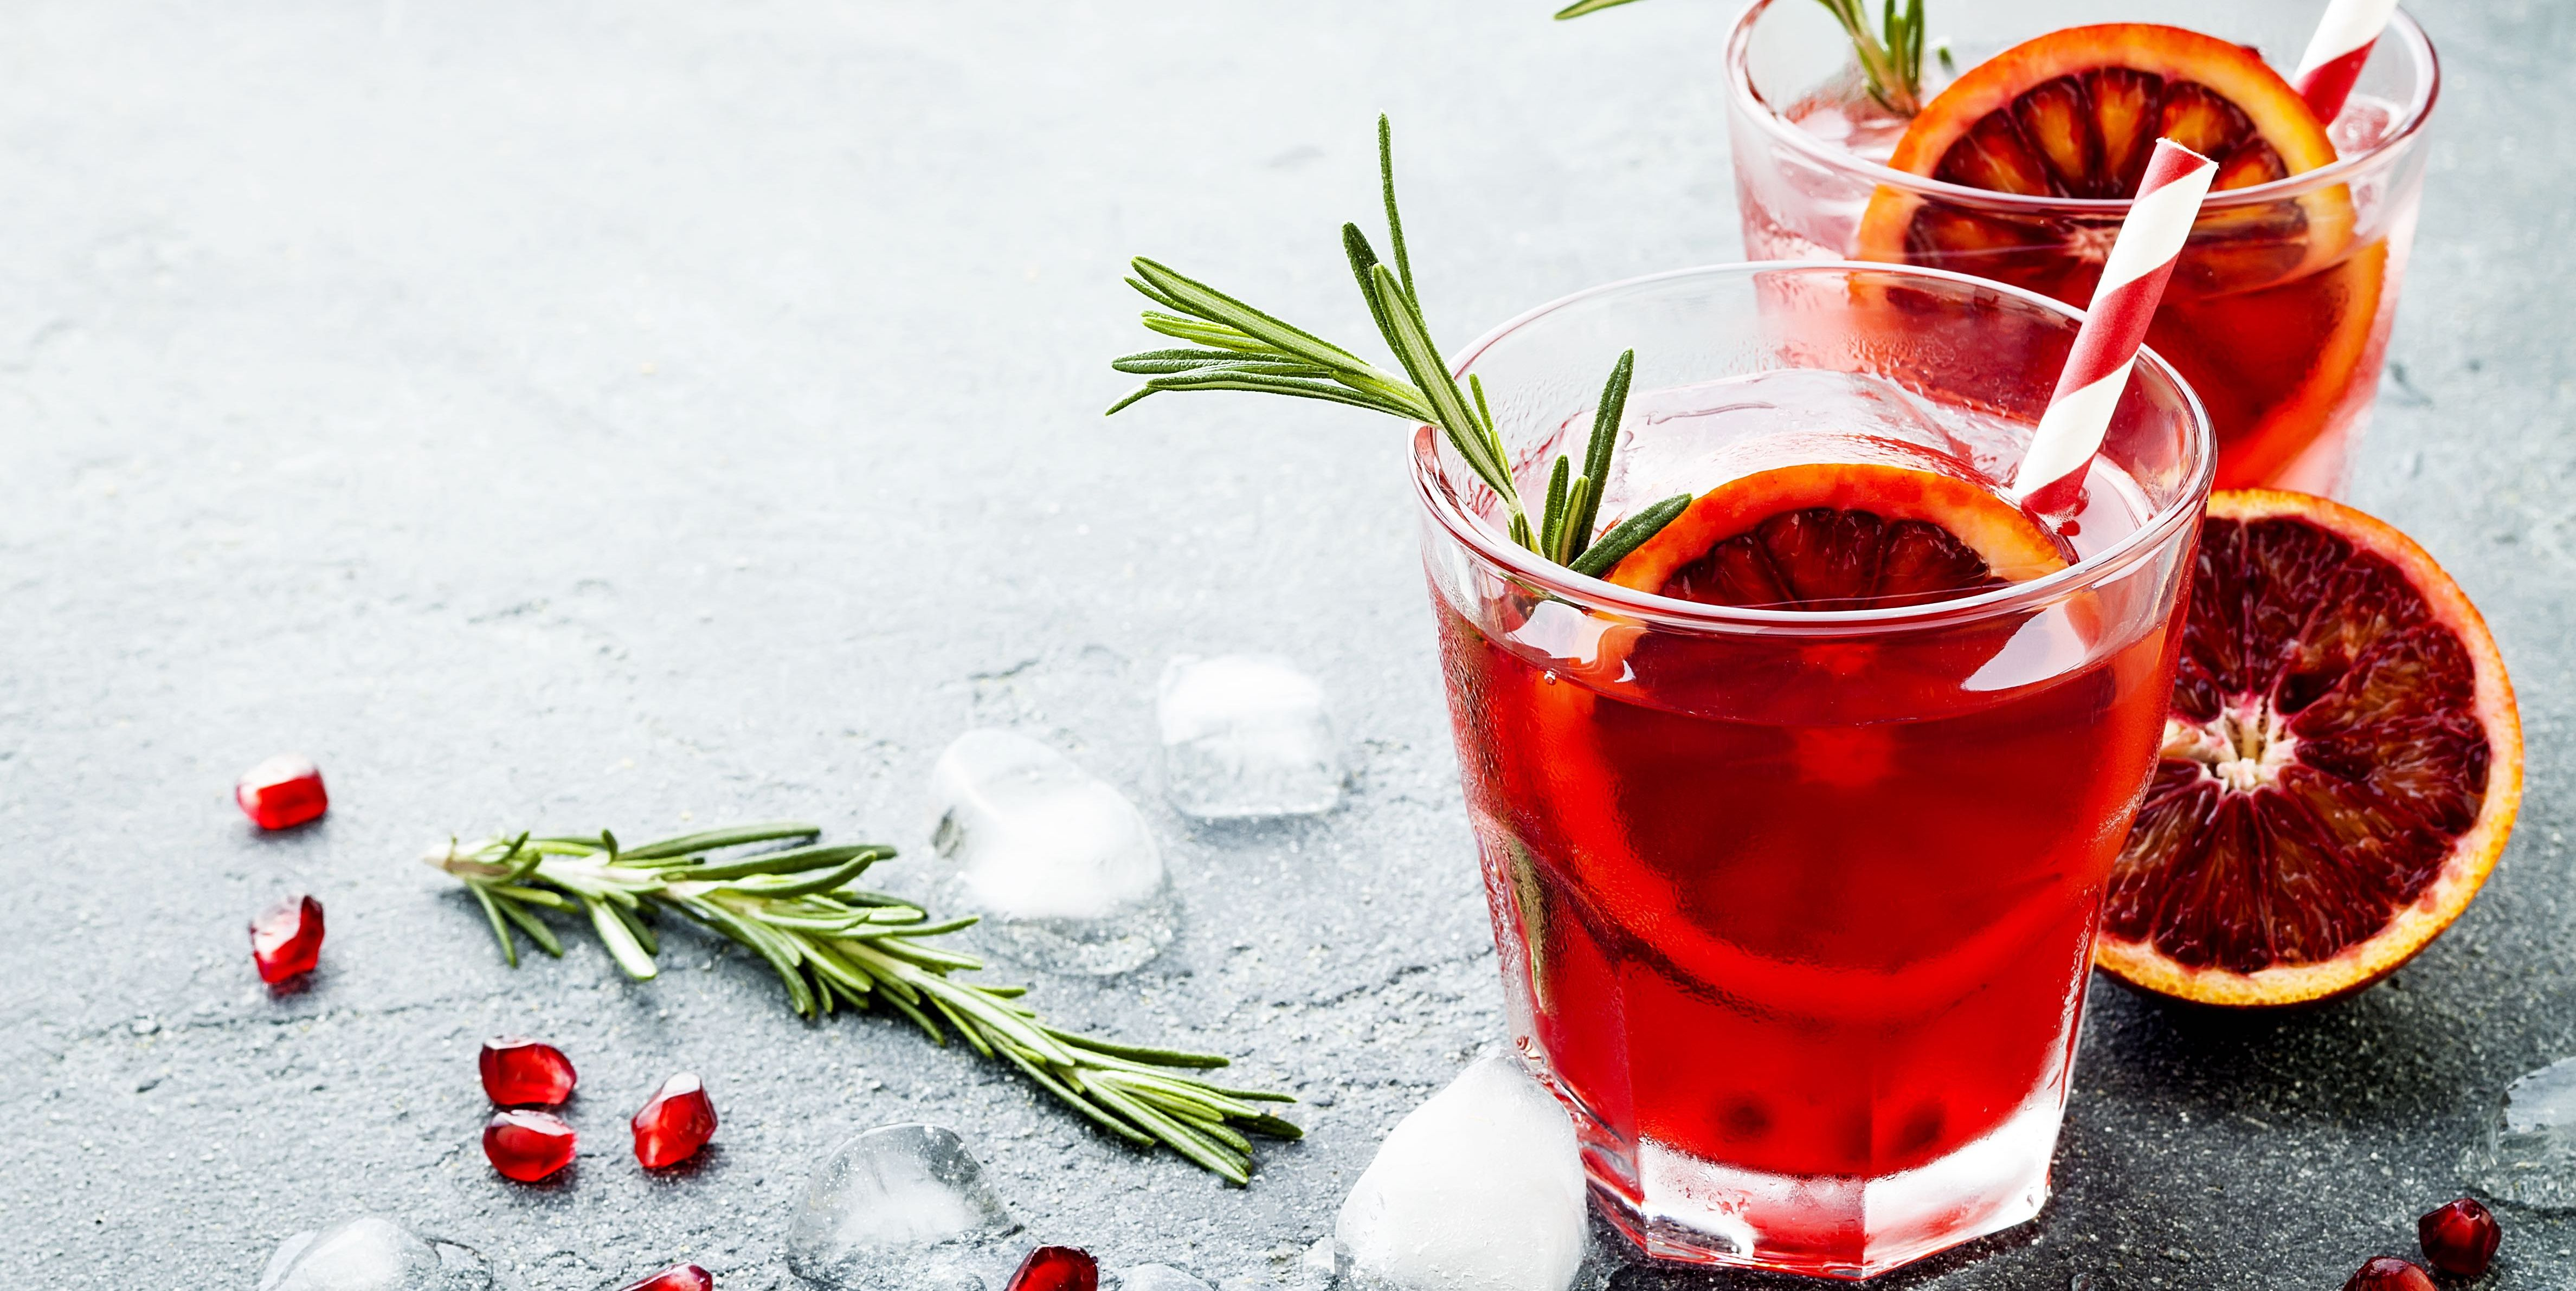 The Holiday Cocktail You Should Drink Based on Your Zodiac Sign